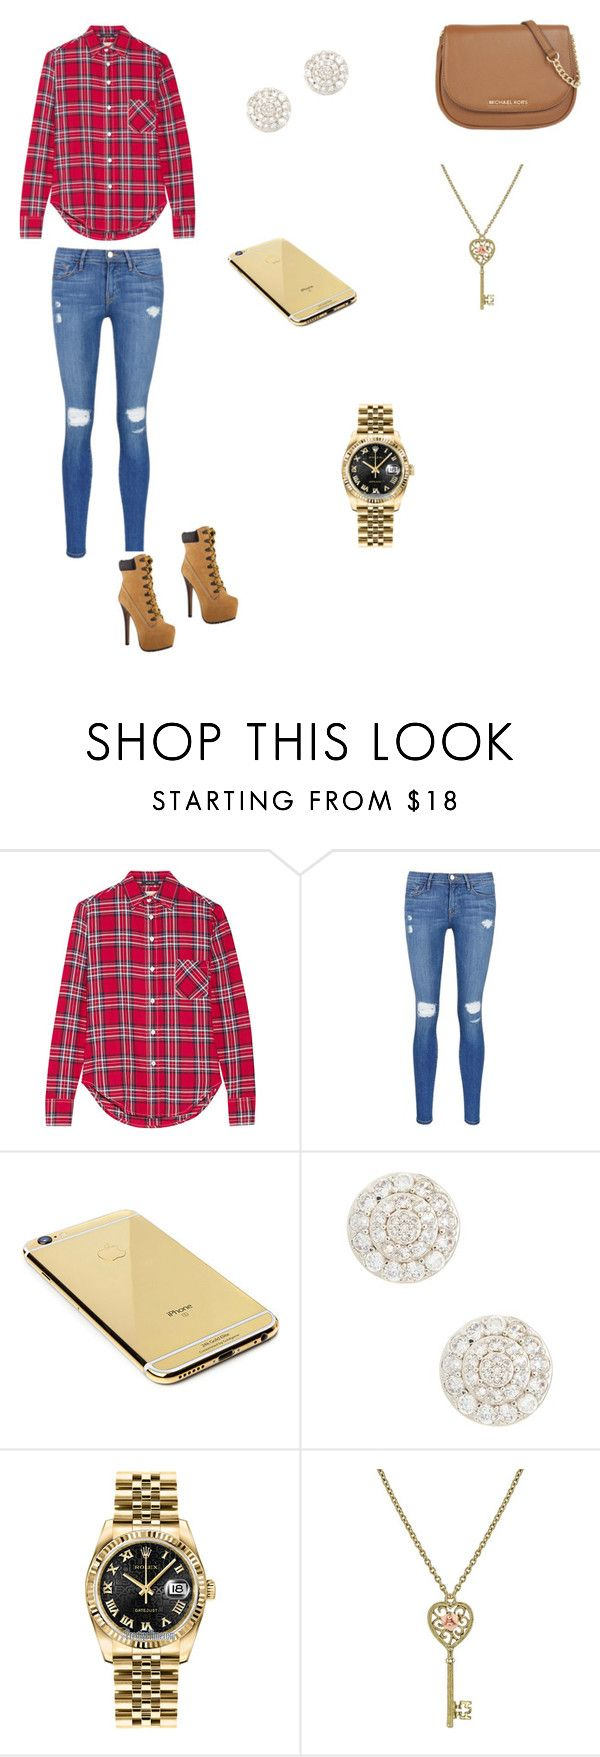 """Untitled #7"" by alyissa-narvais ❤ liked on Polyvore featuring R13, Frame Denim, Jimmy Choo, Goldgenie, Nadri, Rolex, 1928 and MICHAEL Michael Kors"